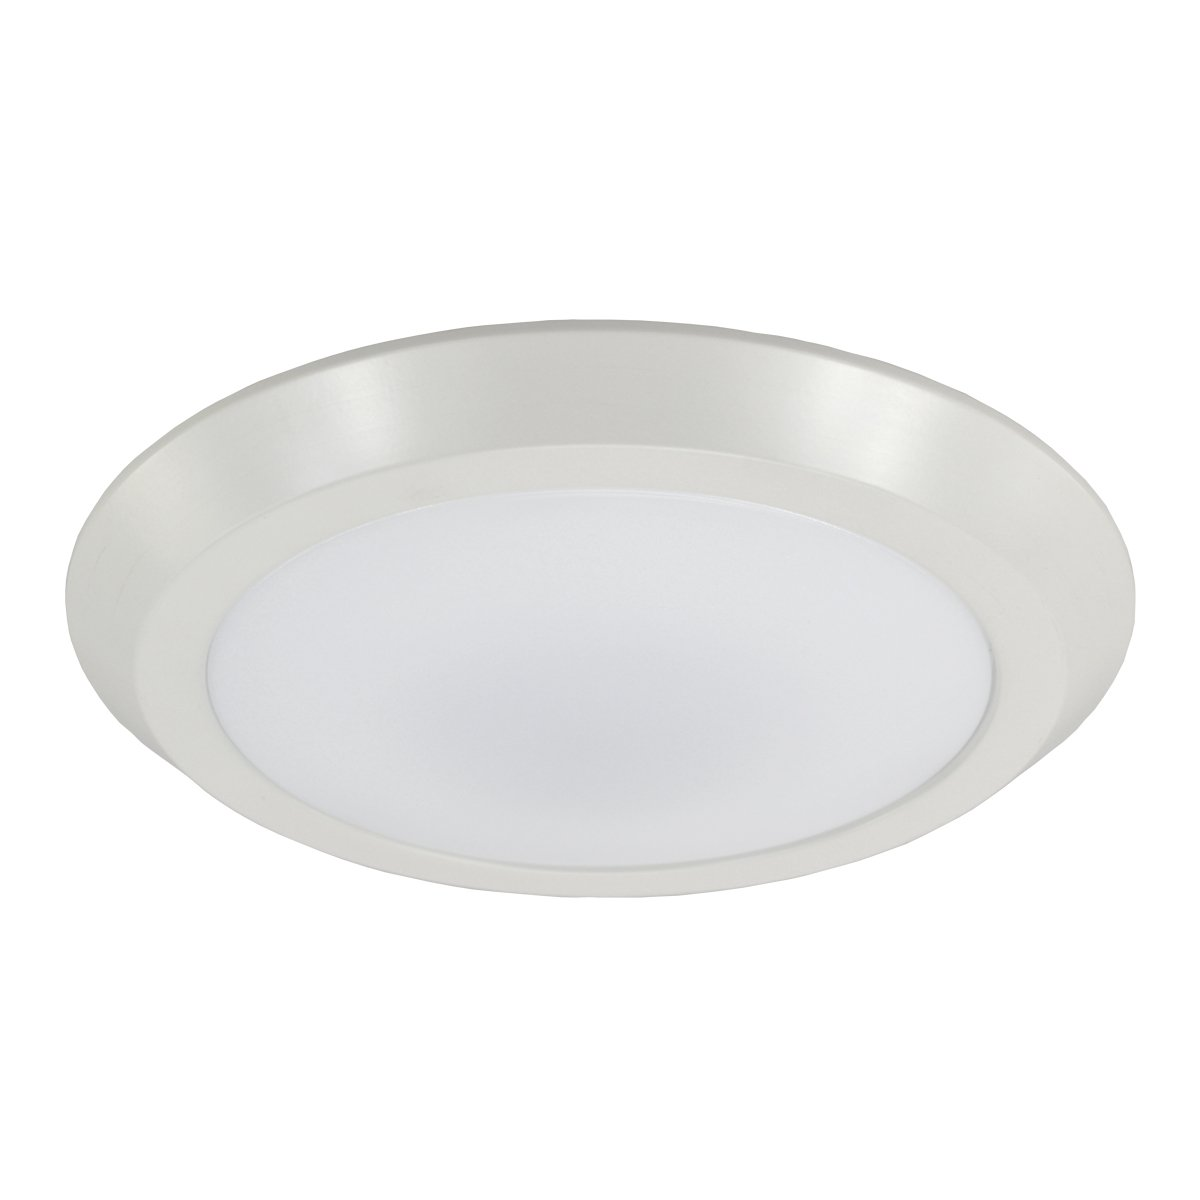 HomeSelects 8112 Essential LED Surface Mount Disk Light, White with Acrylic Shades, 12''L x 12''W x 0.75''H